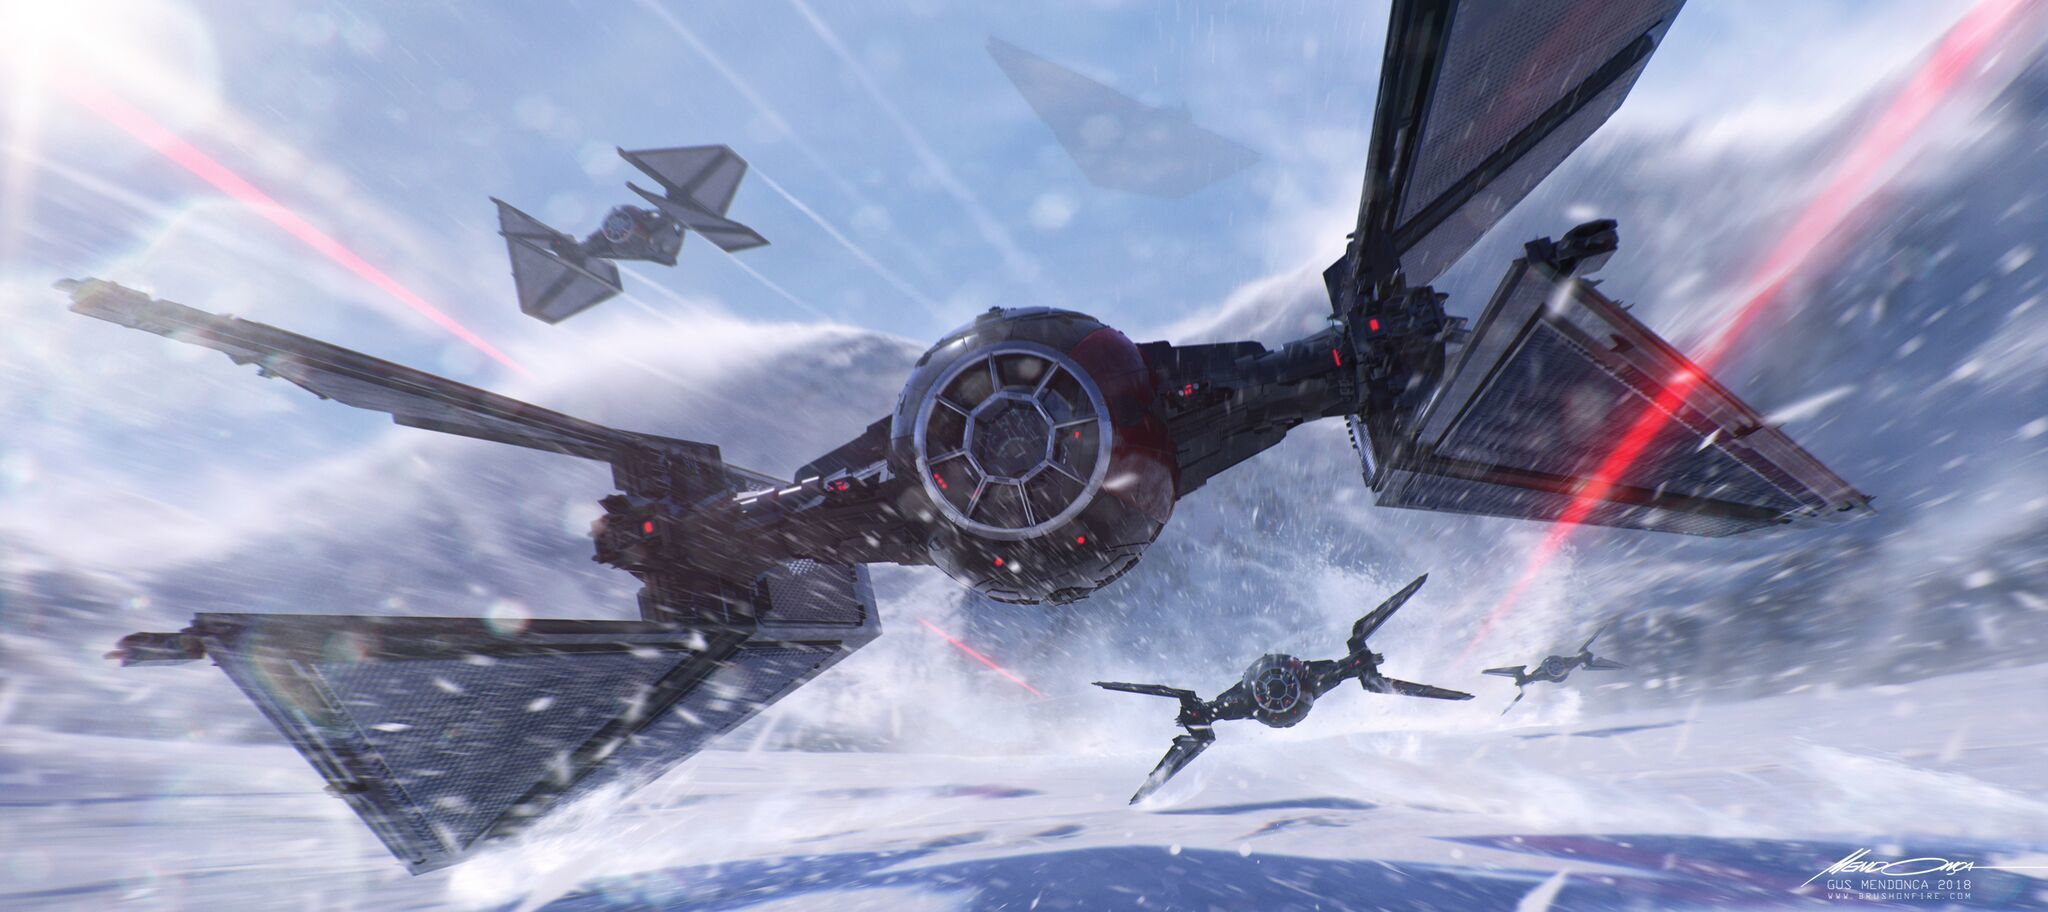 Jobs We Want: Concept artist Gus Mendonca helps create the look of Star Wars, Halo, and others